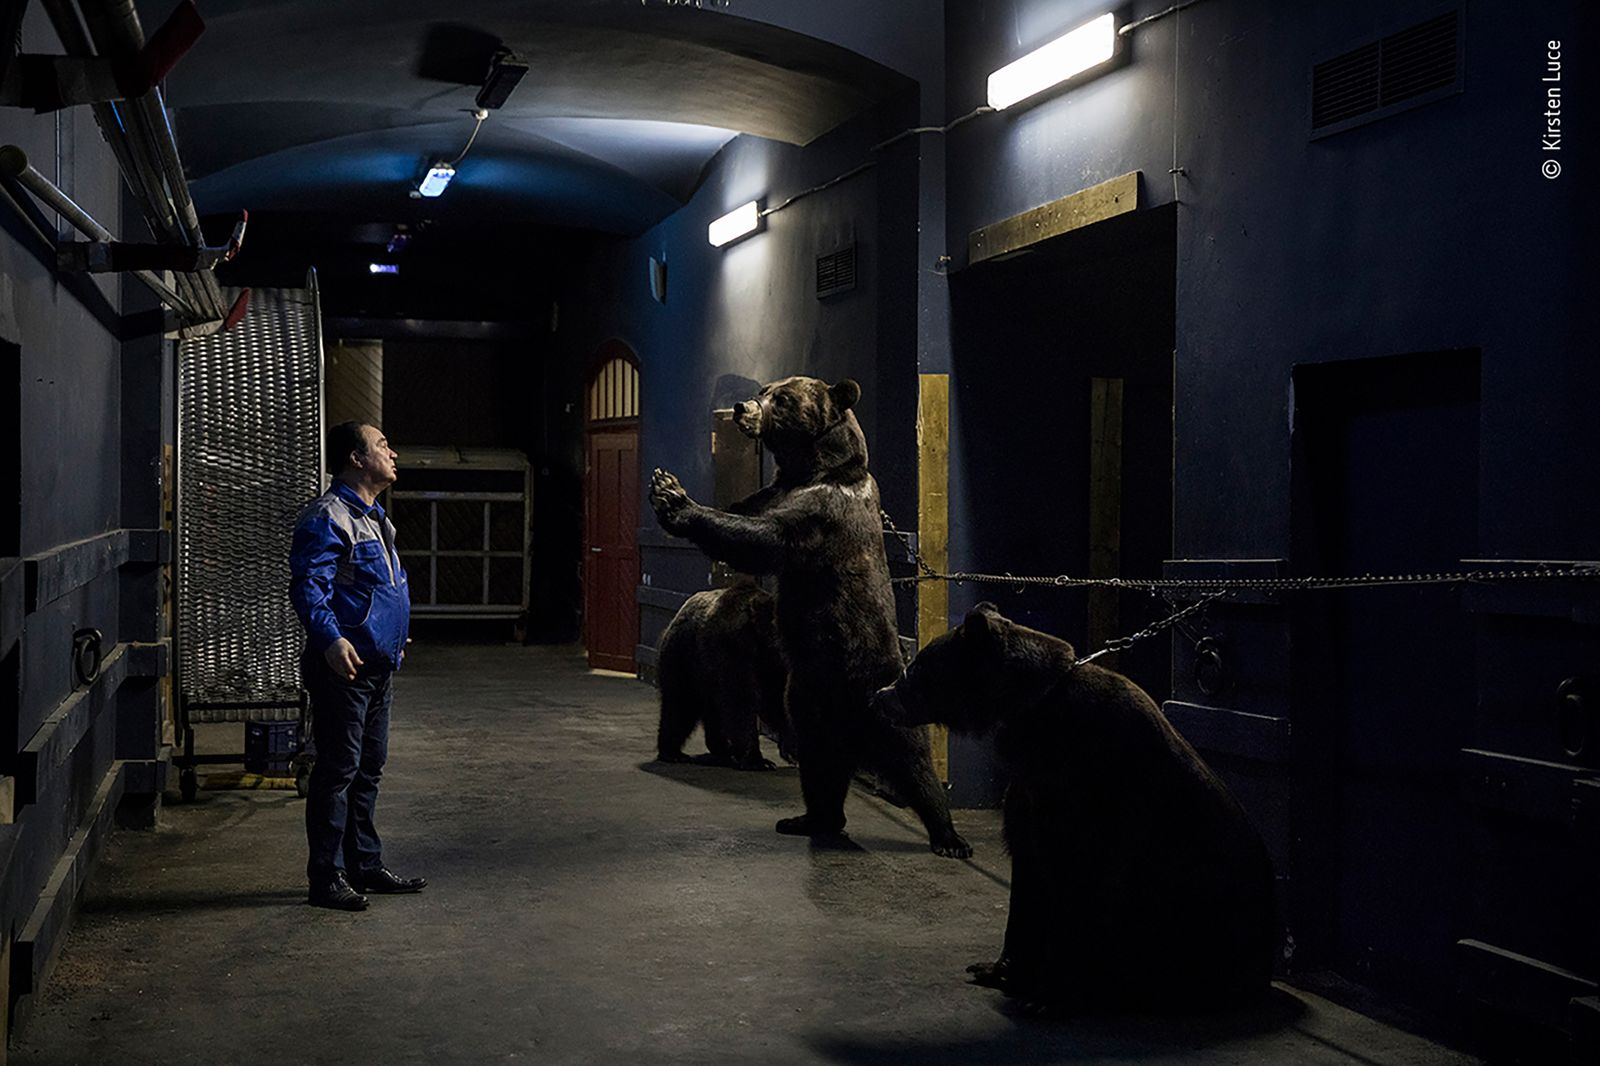 Backstage at the circus by Kirsten Luce, USA